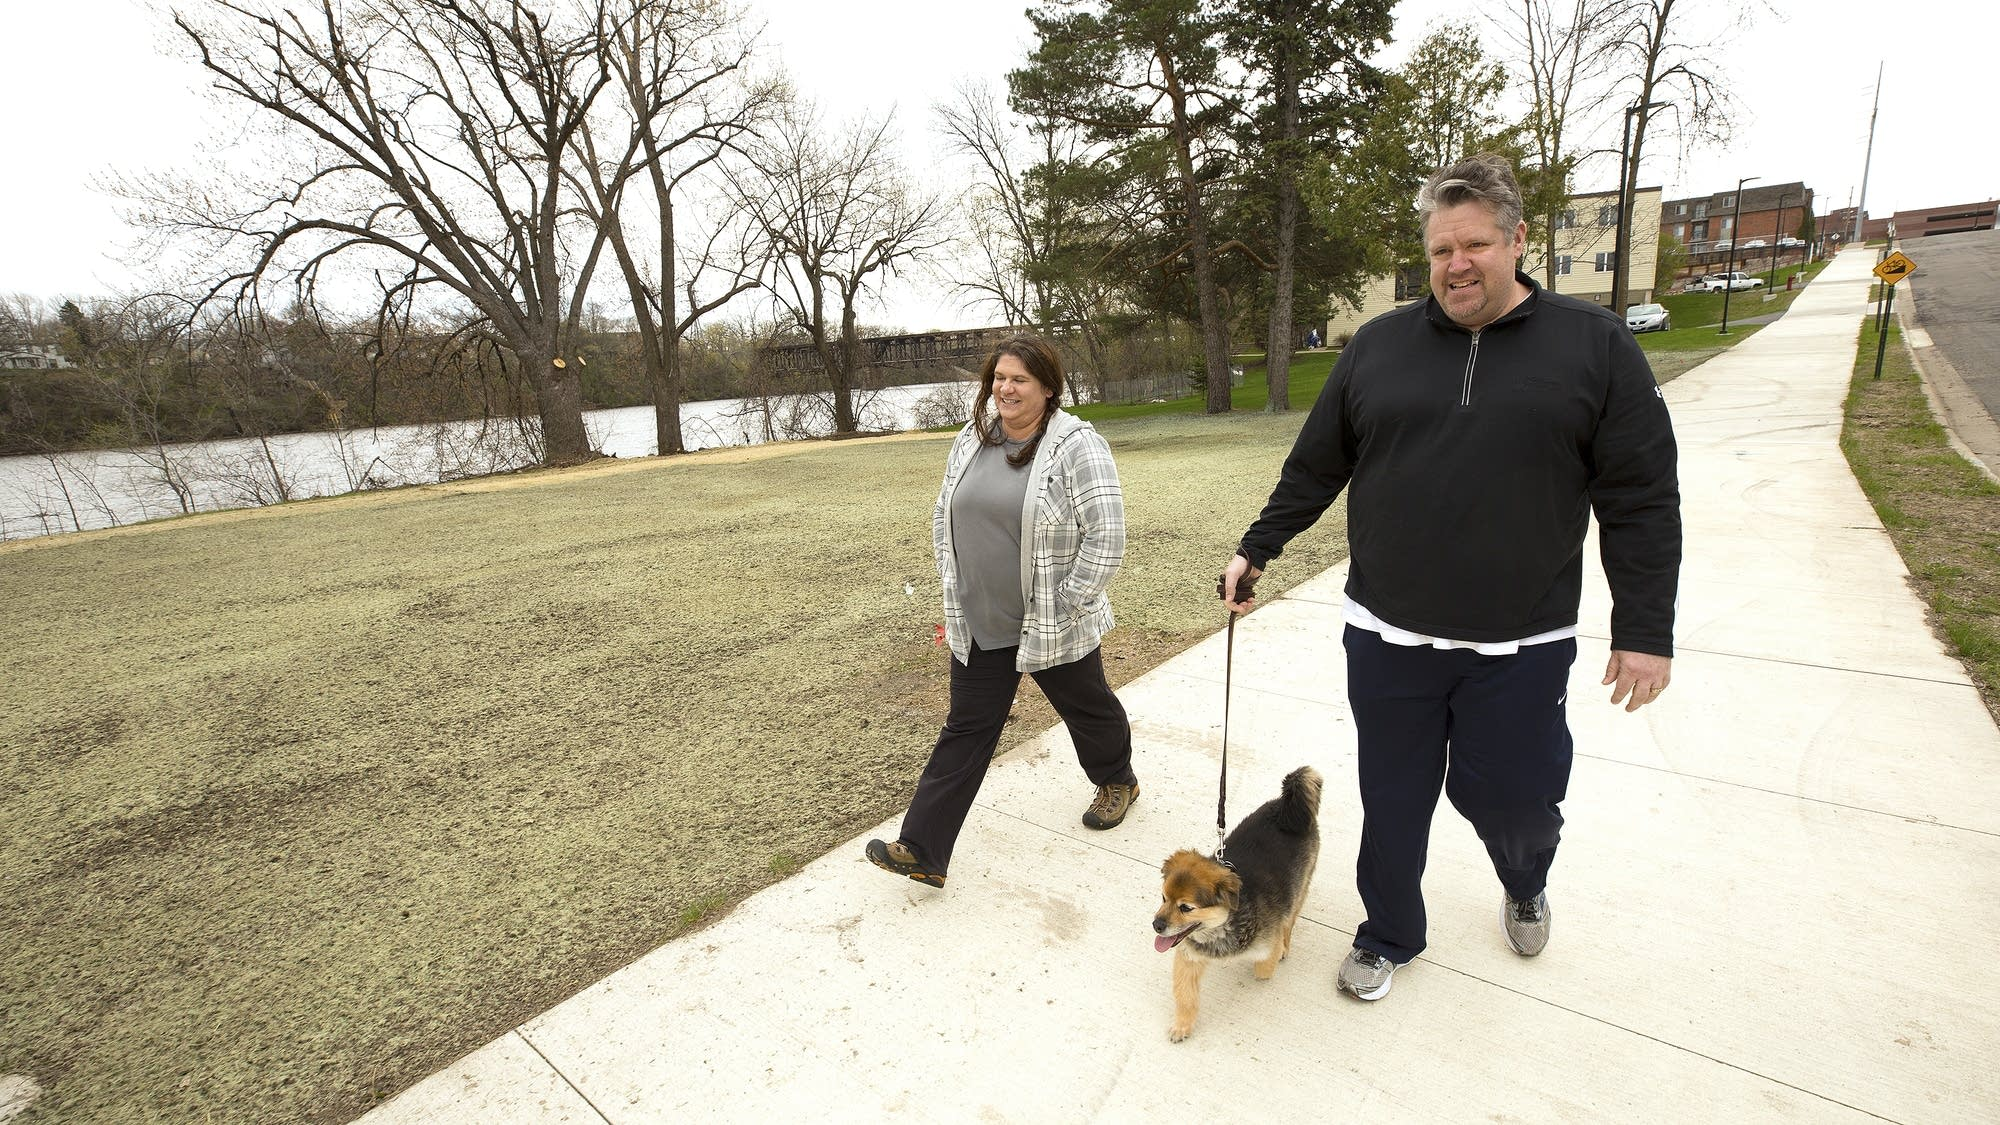 Stacy and Ryan Olson walk their dog, Trigger, near the new Butler Park.